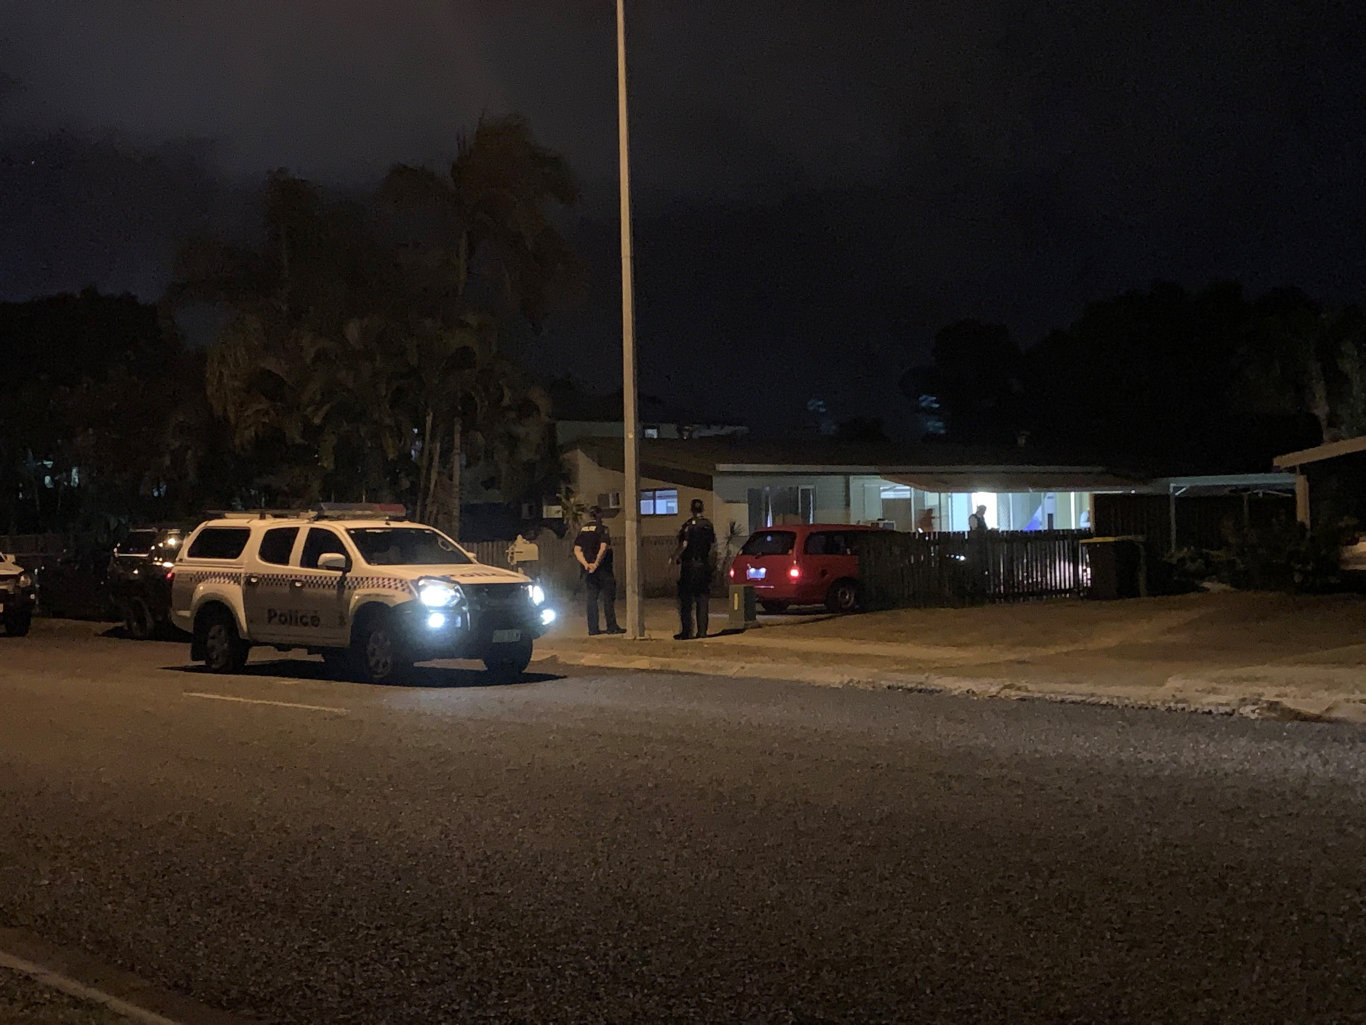 The scene of a suspected shooting at Andergrove.